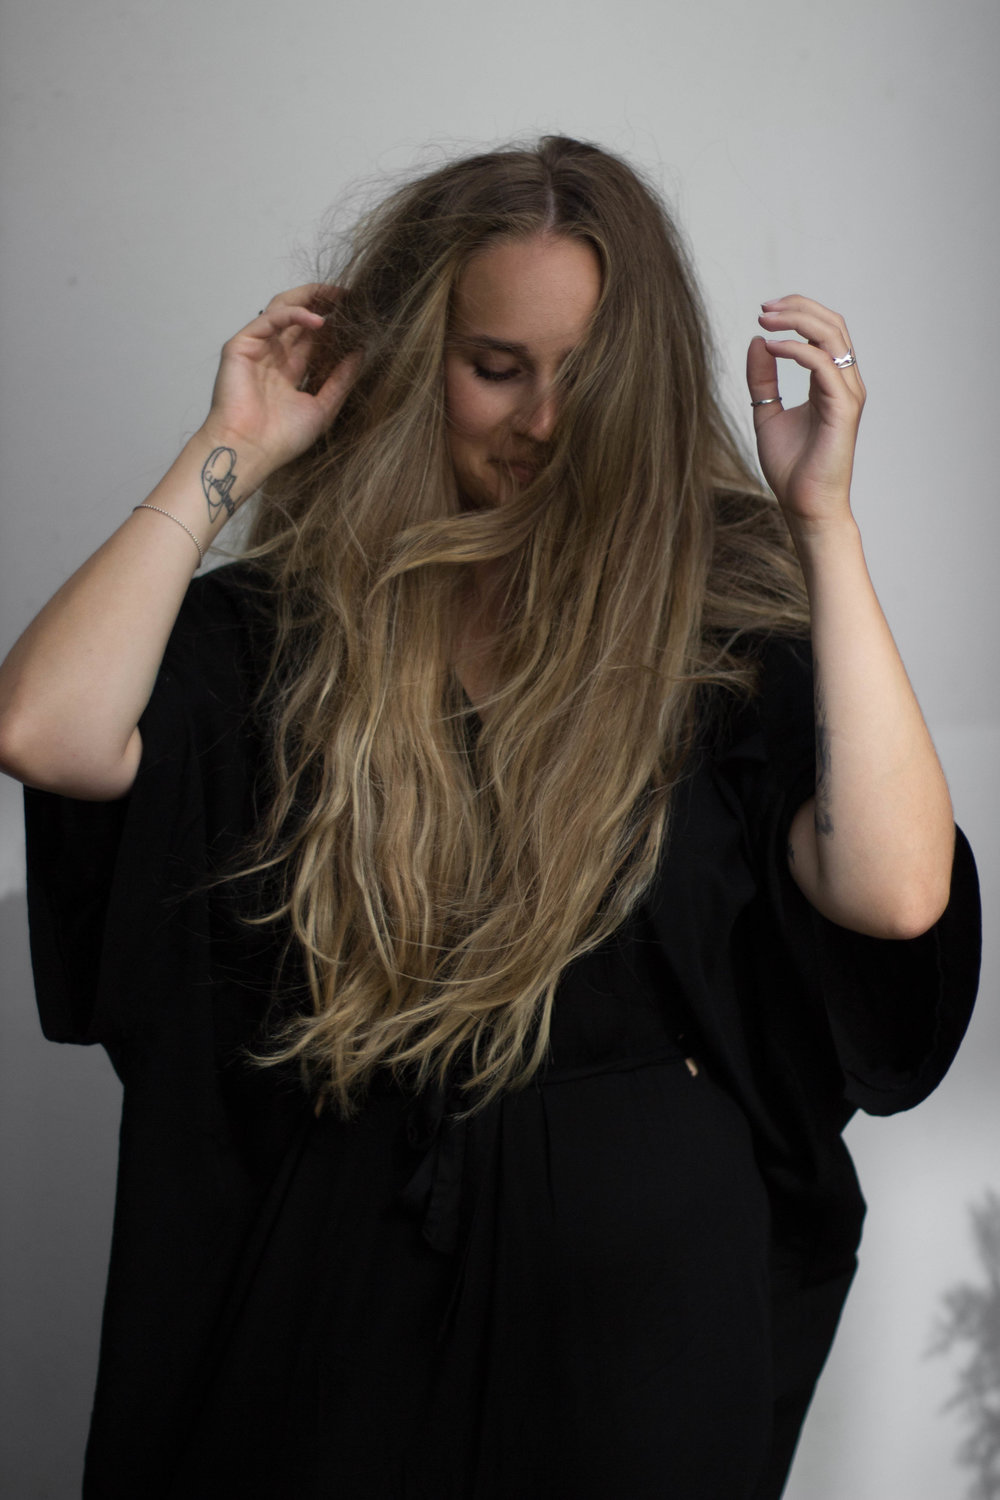 löwengrip, blondehair, beachahair, aboutthatlook löwengrip haircare, haircare, beauty